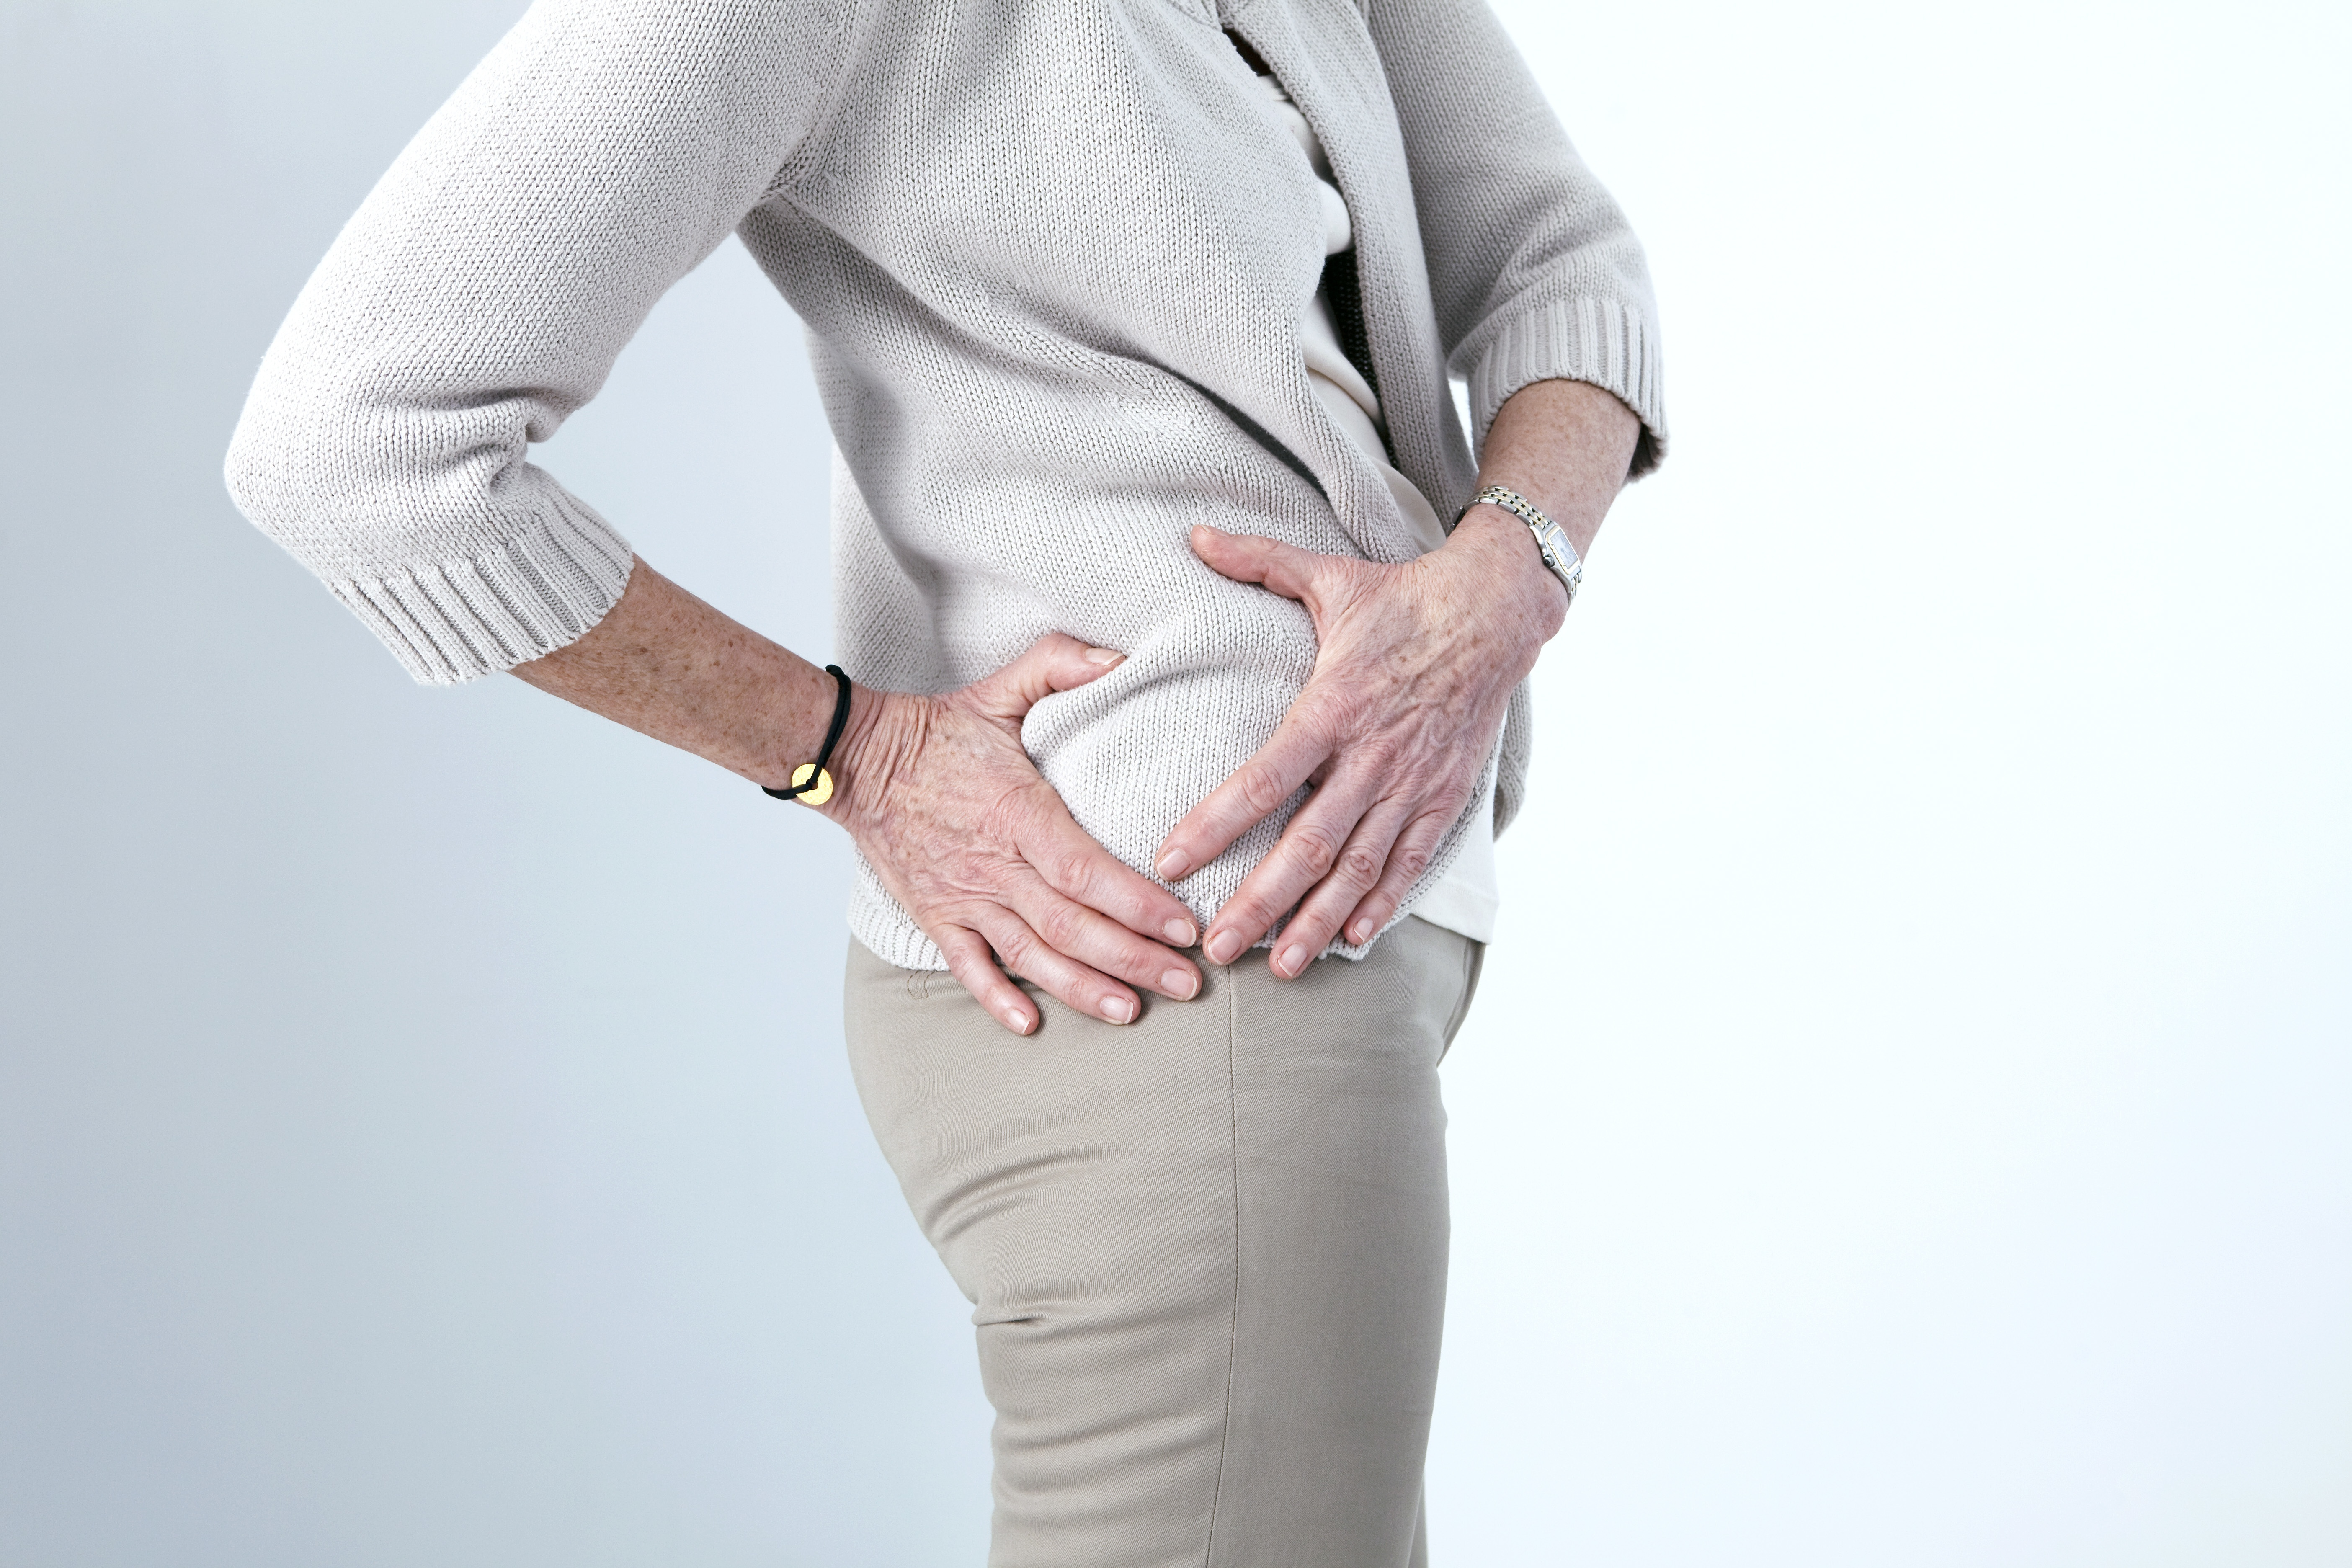 Hip Osteoarthritis: What are the Risks?